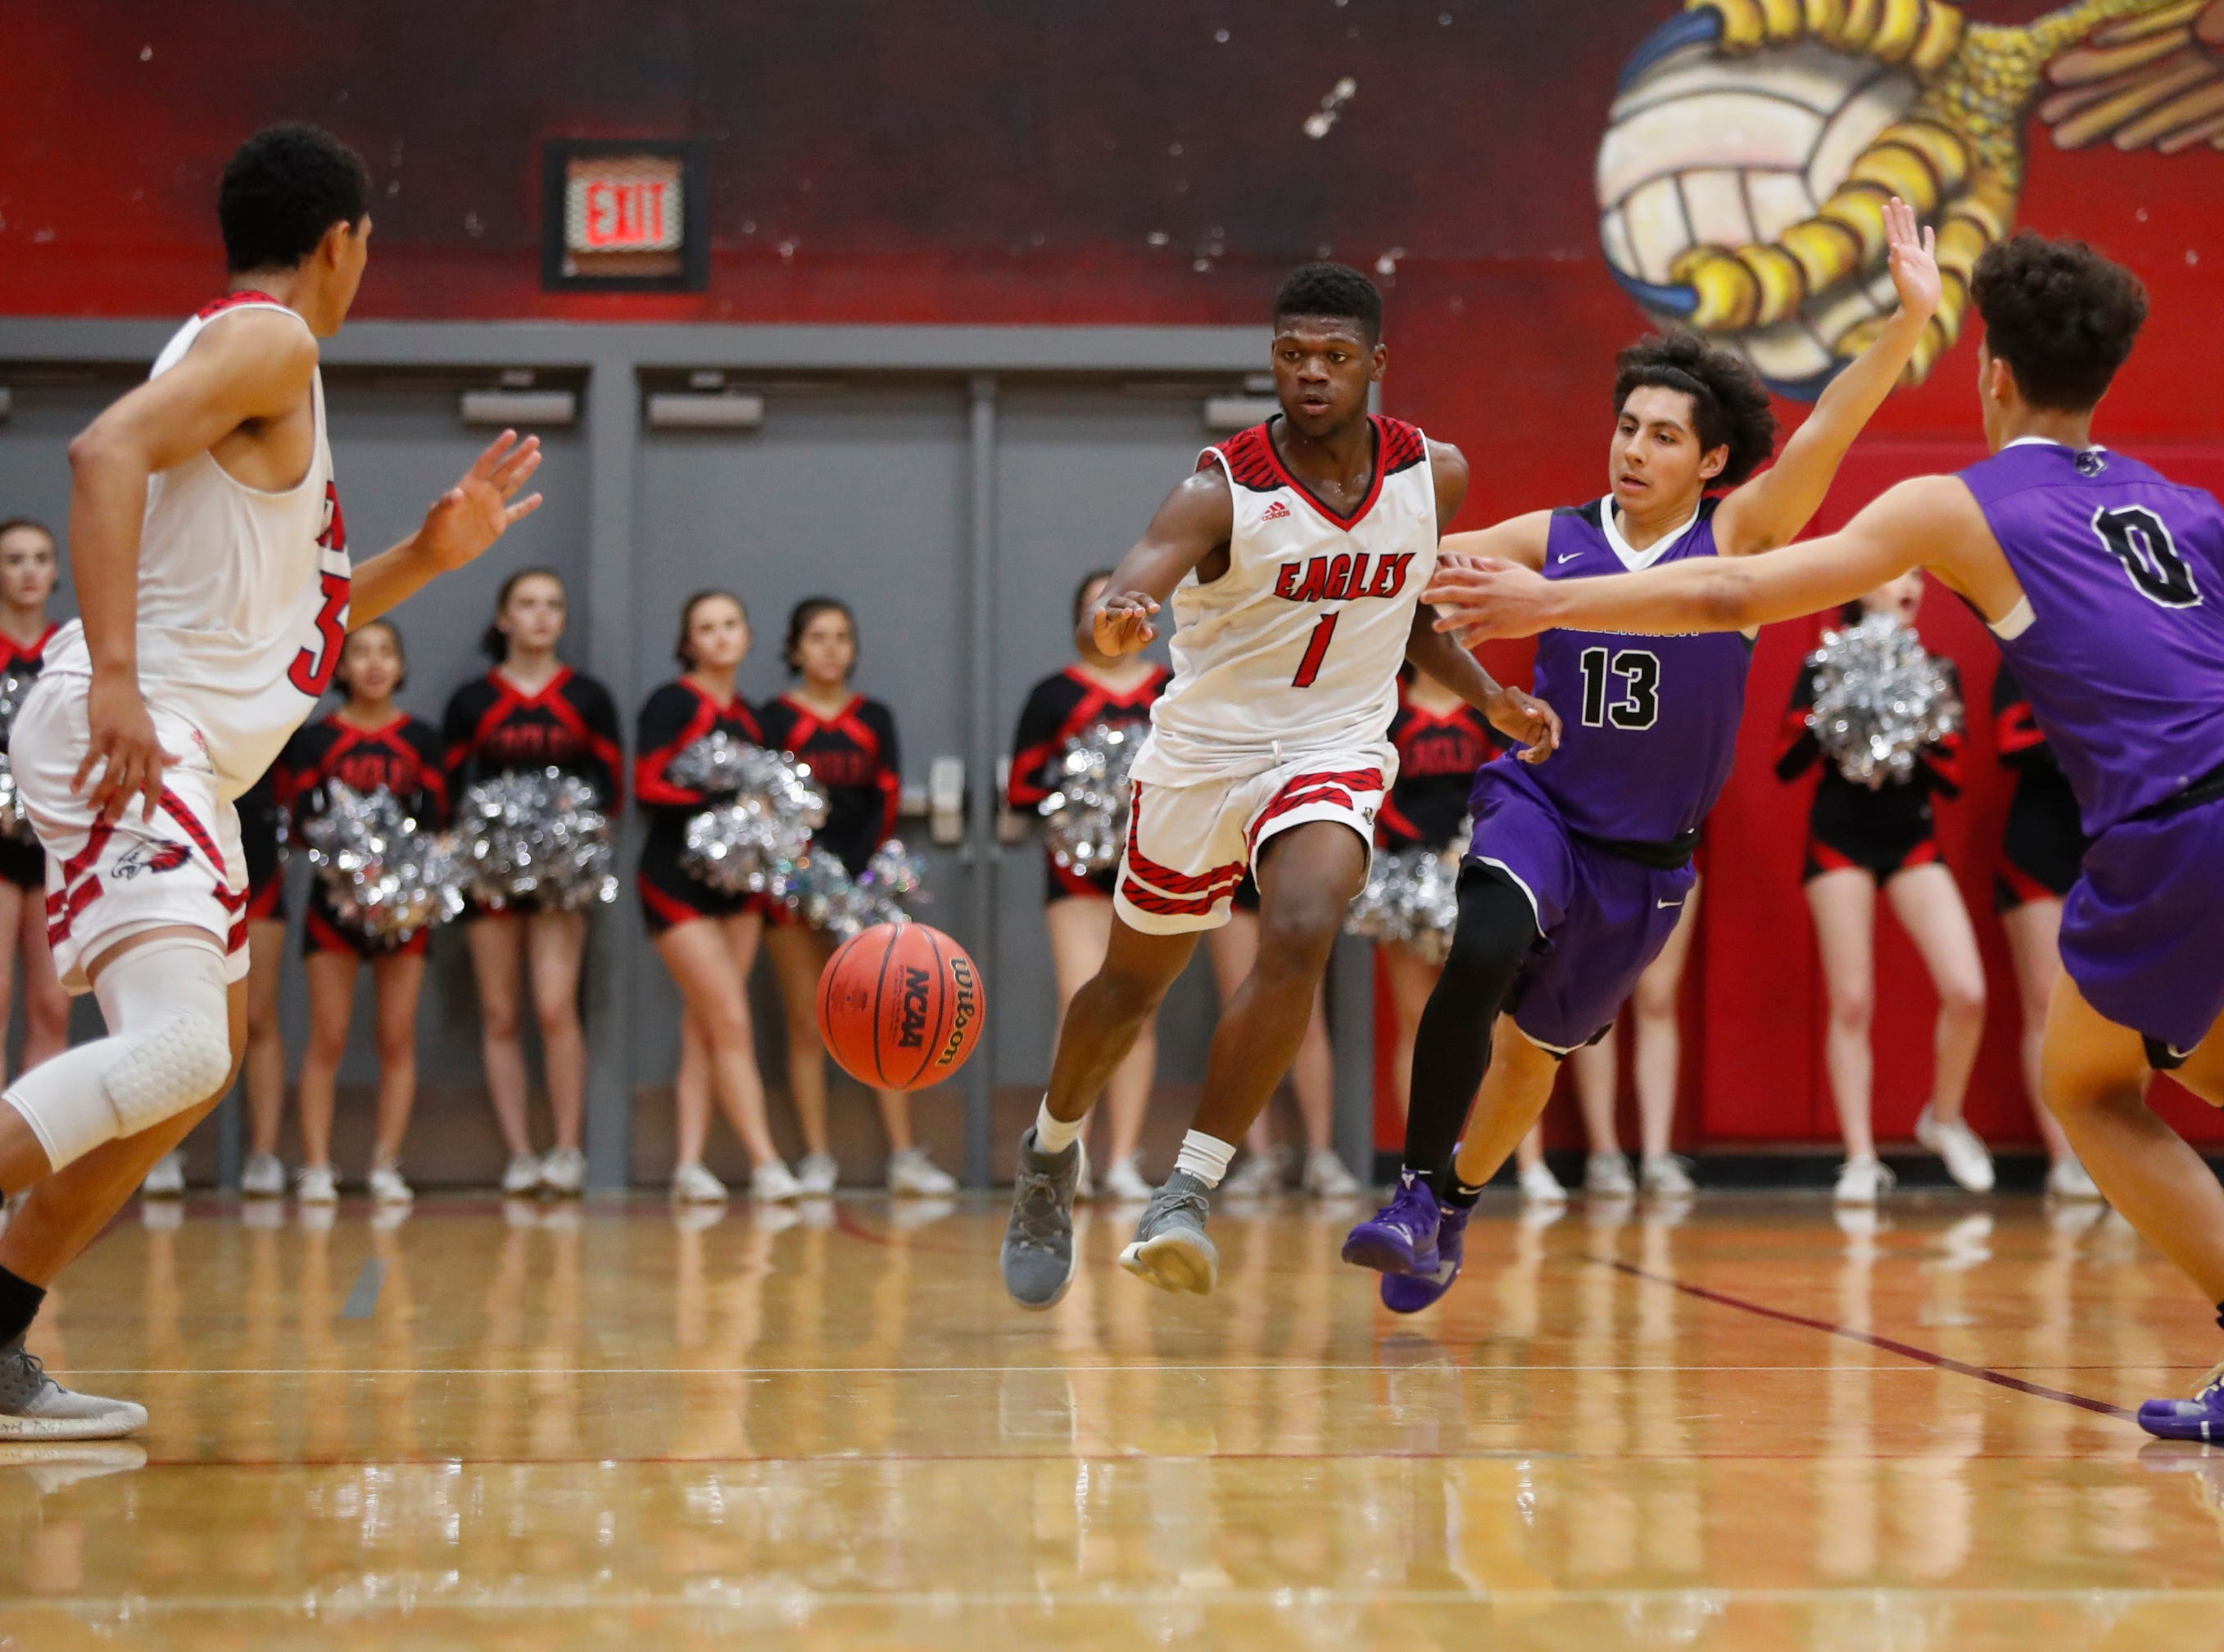 Ironwood's Malik Smith (1) makes a pass under pressure from Millennium's Jose Cortes (13) during the second half of the 5A state quarterfinal game at Ironwood High School in Glendale, Ariz. on February 15, 2019.